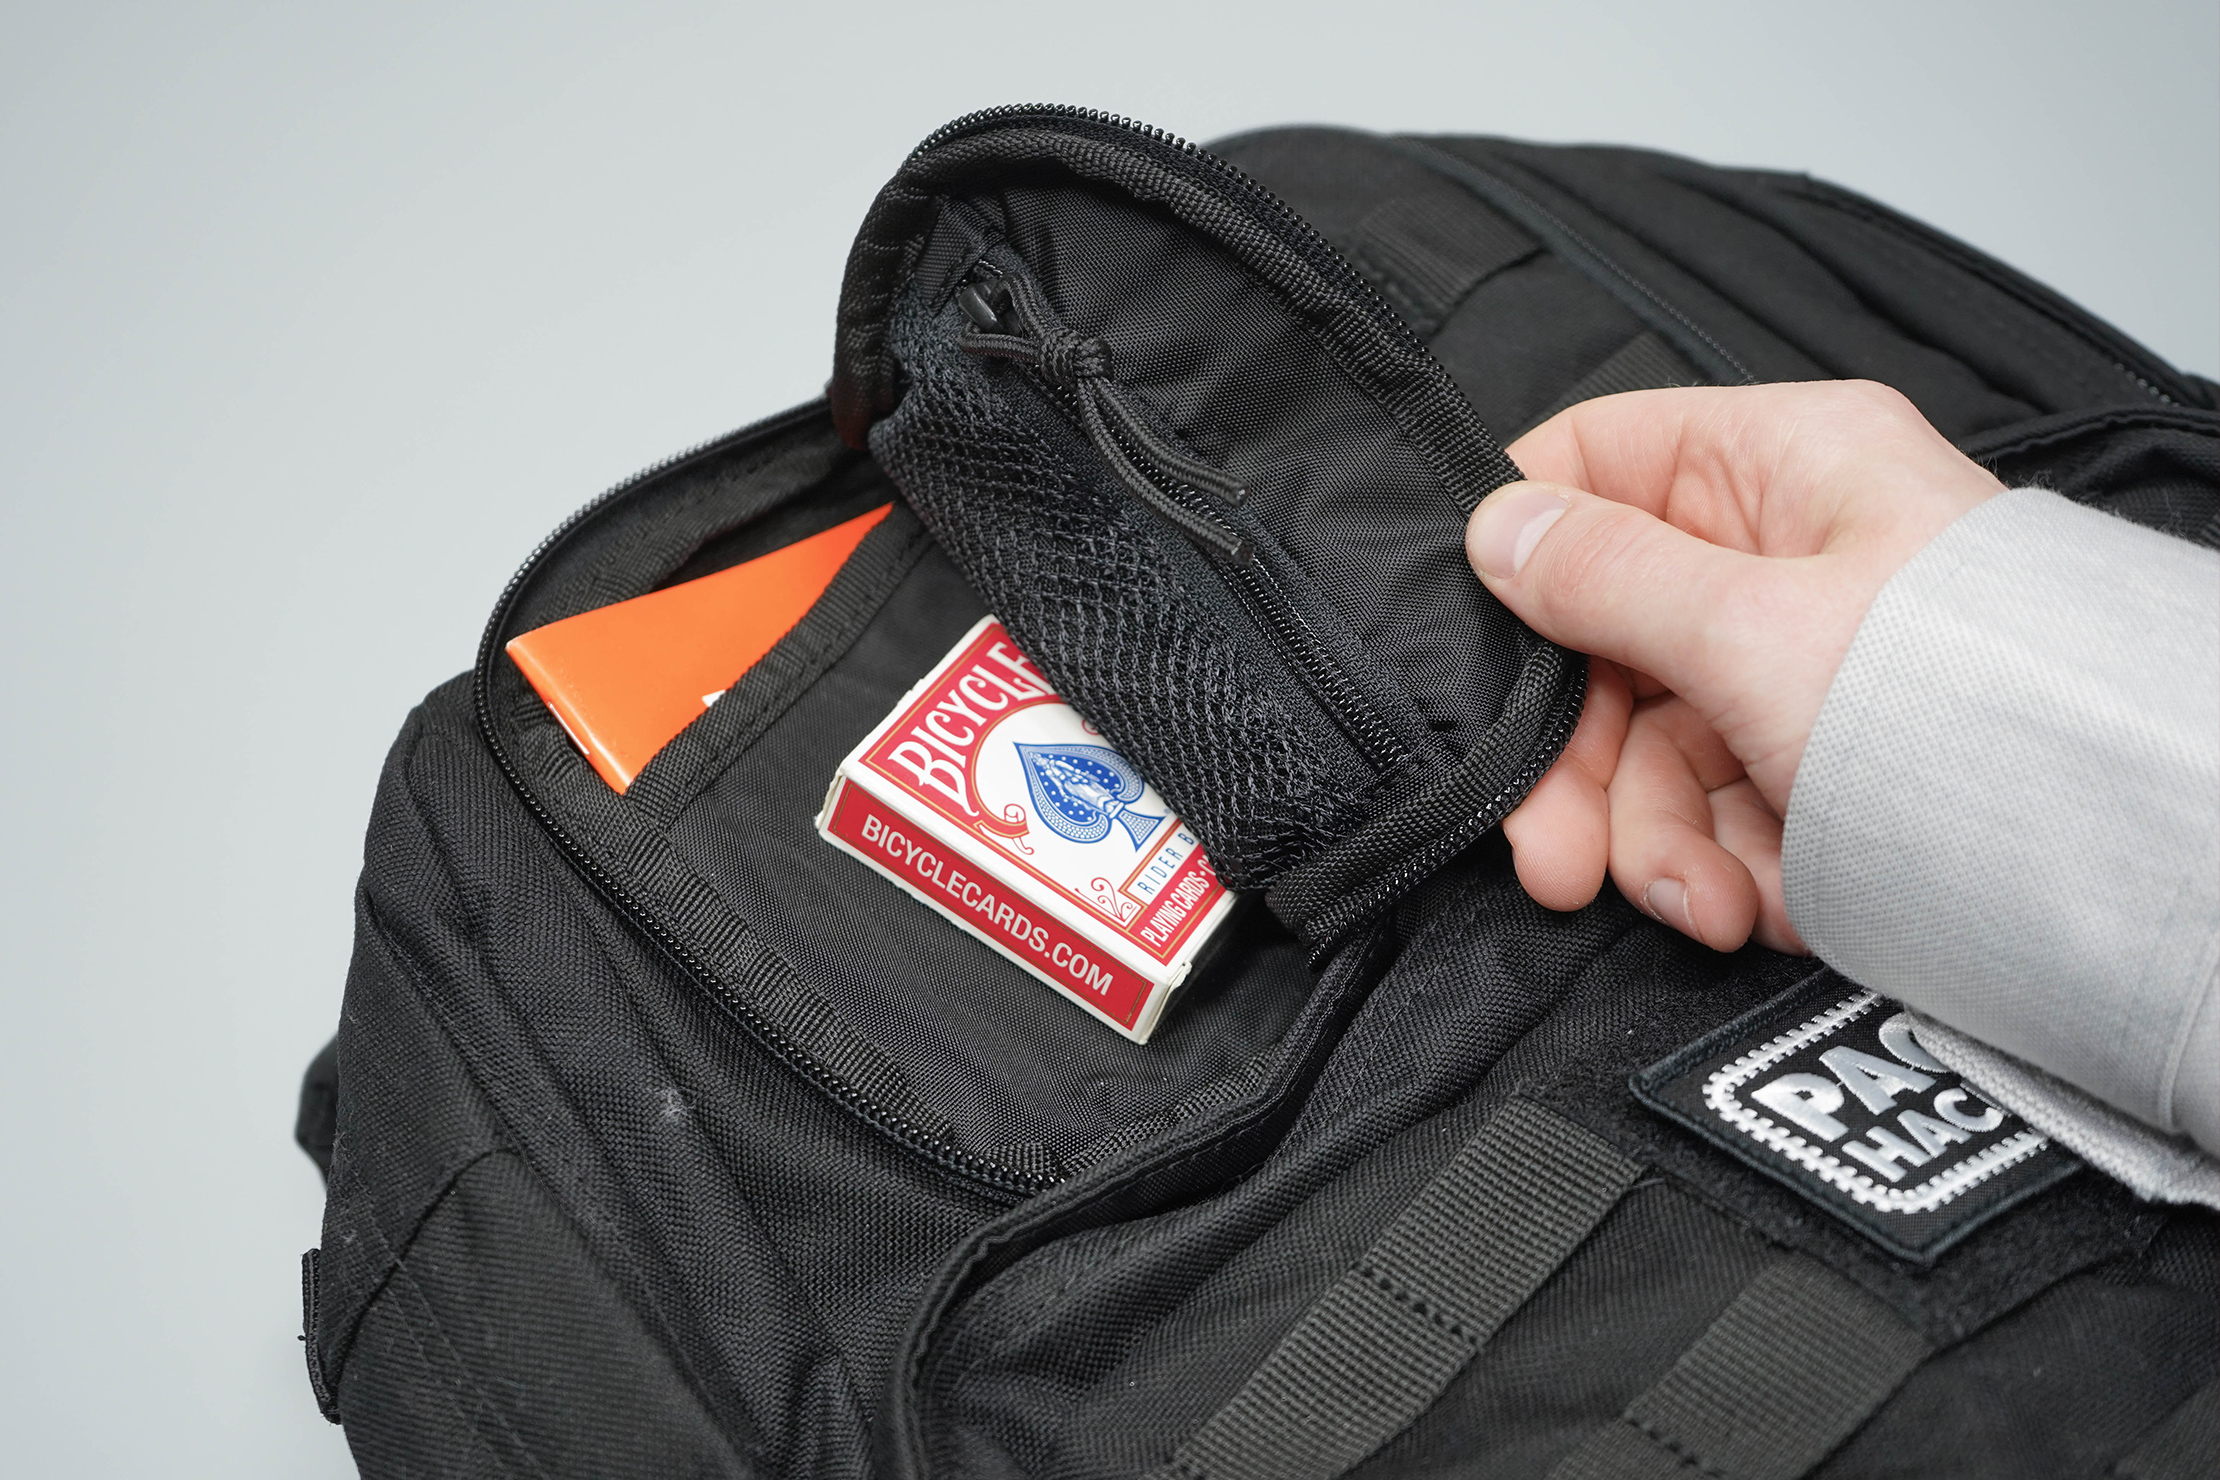 5.11 Tactical Rush24 Backpack Left Top Pocket